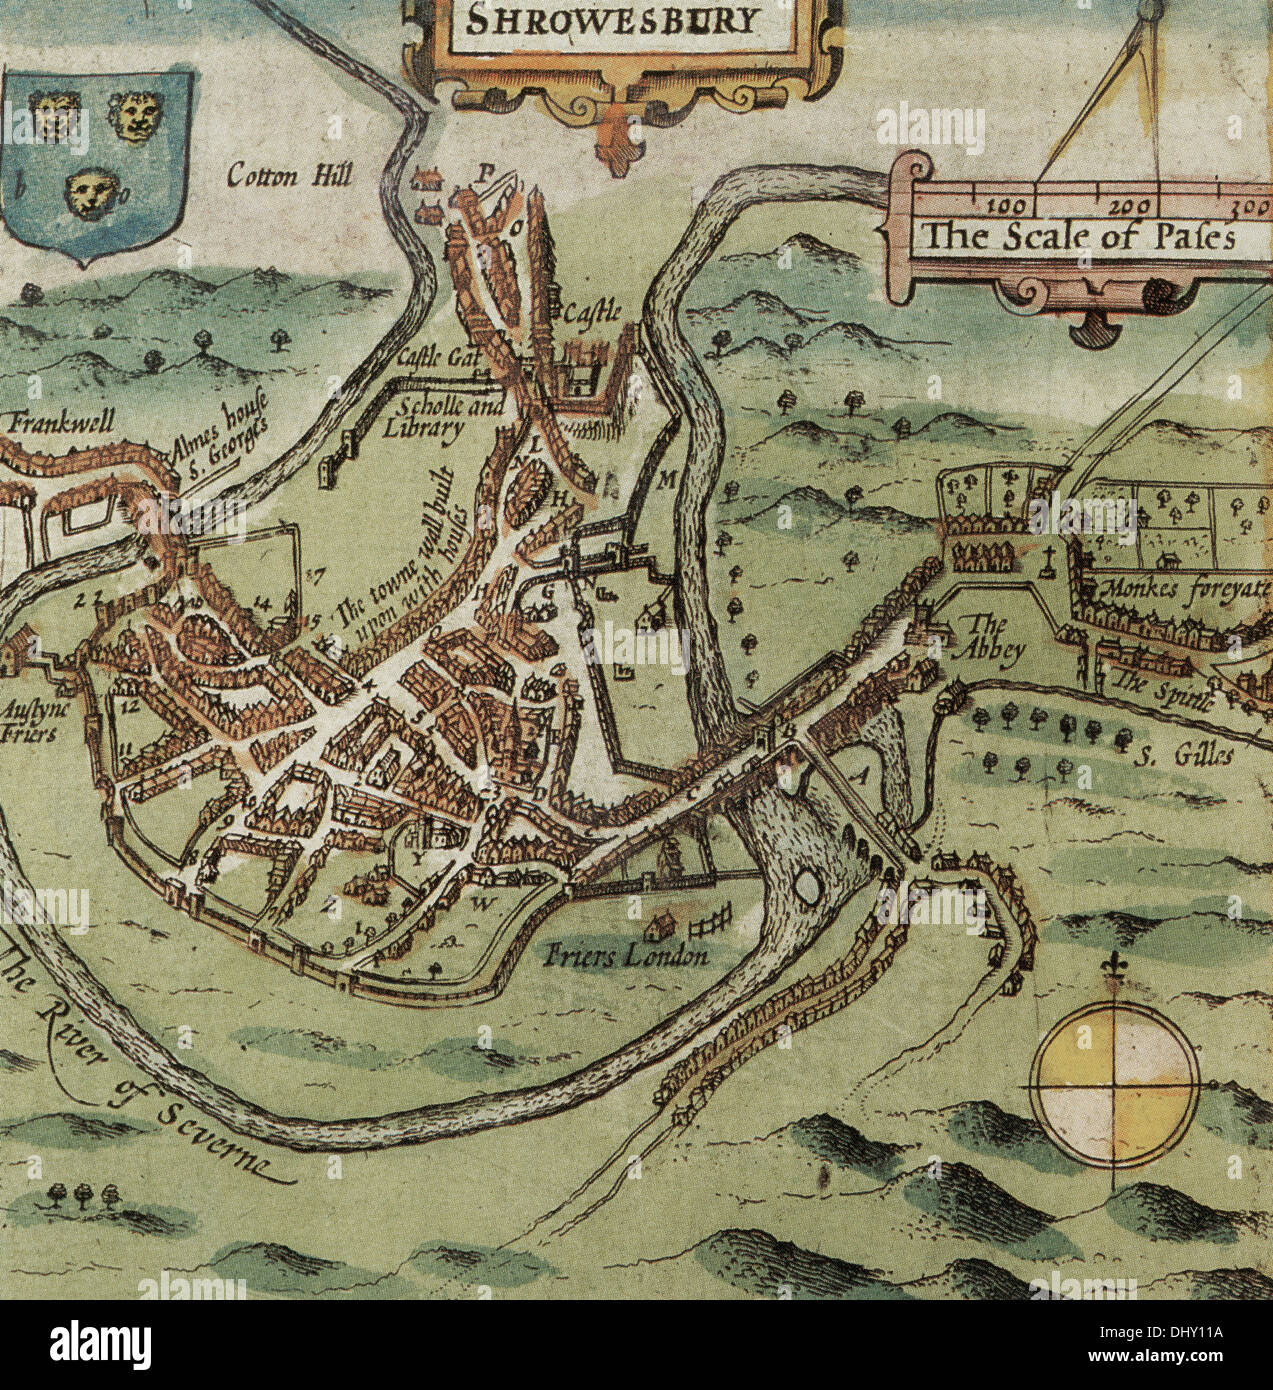 Old map of Shrewsbury England by John Speed 1611 Stock Photo